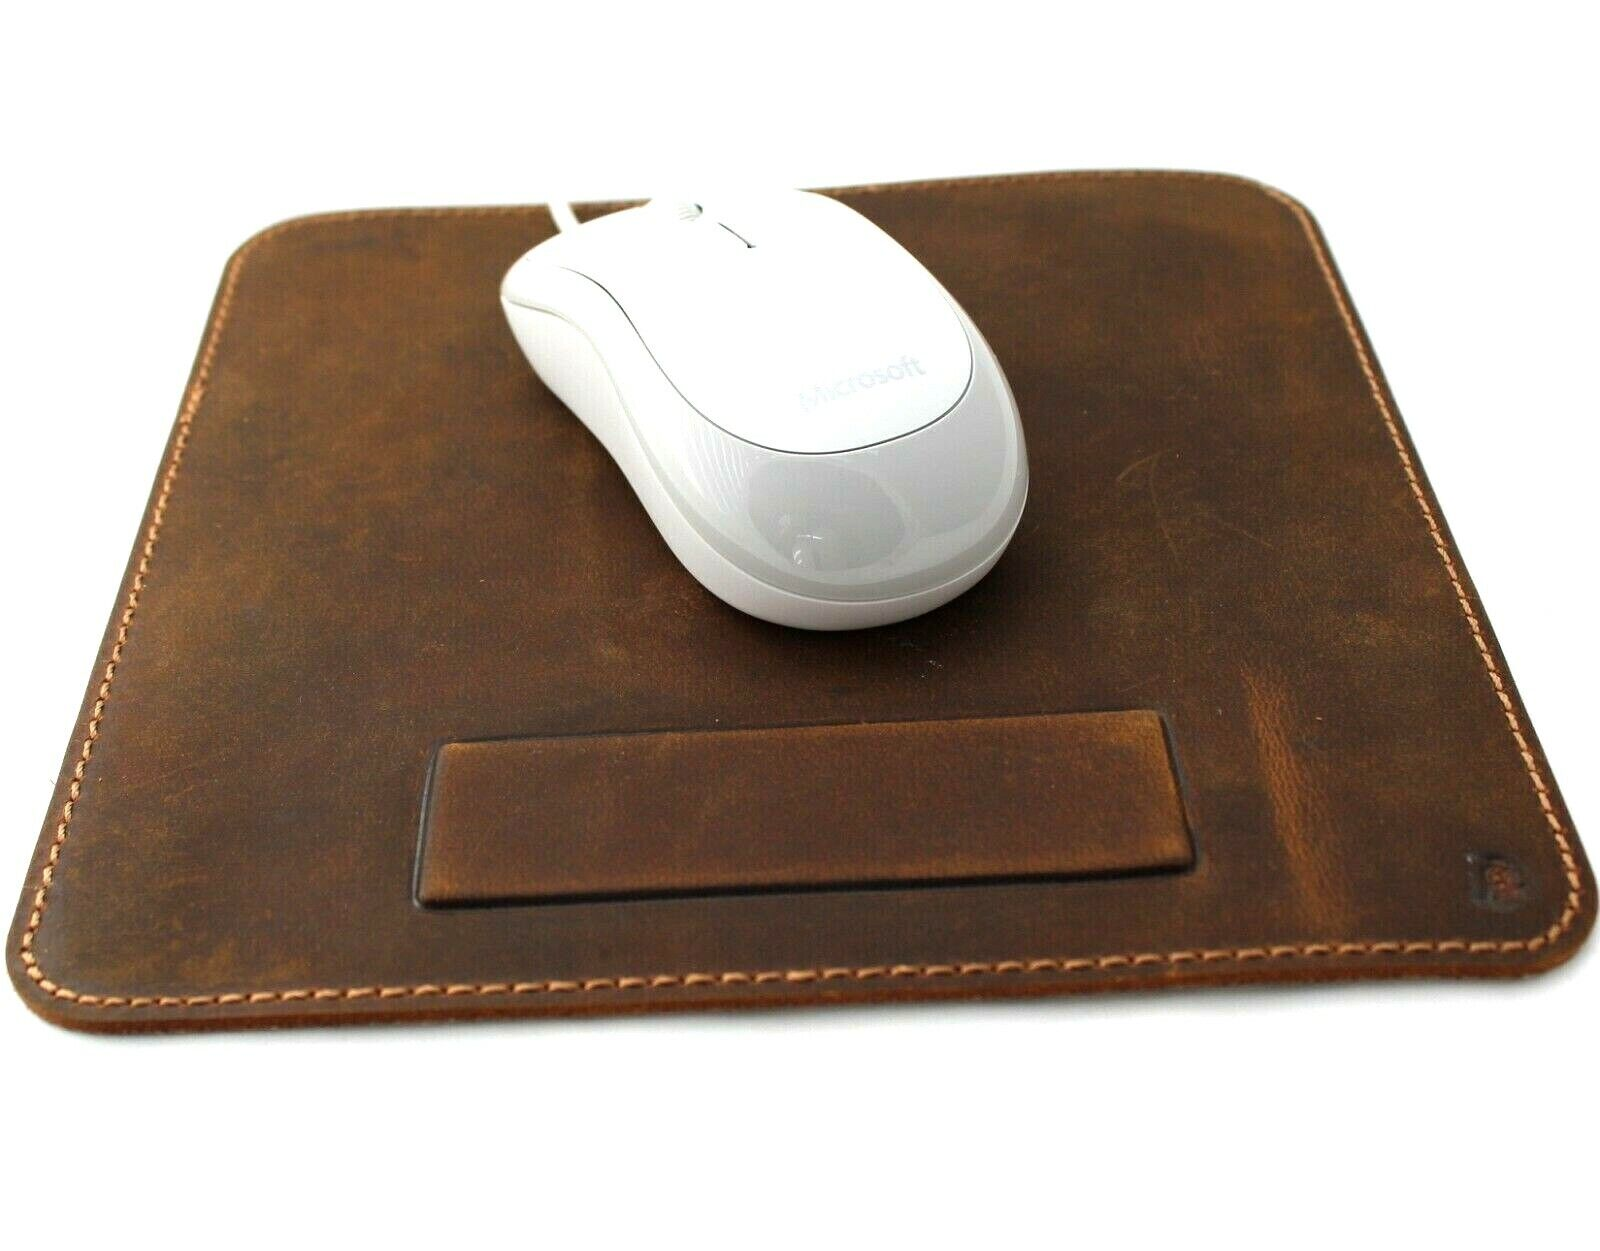 Image 1 - Handmade Genuine Leather Mouse Pad Luxury Handcrafted soft Vintage Retro Case